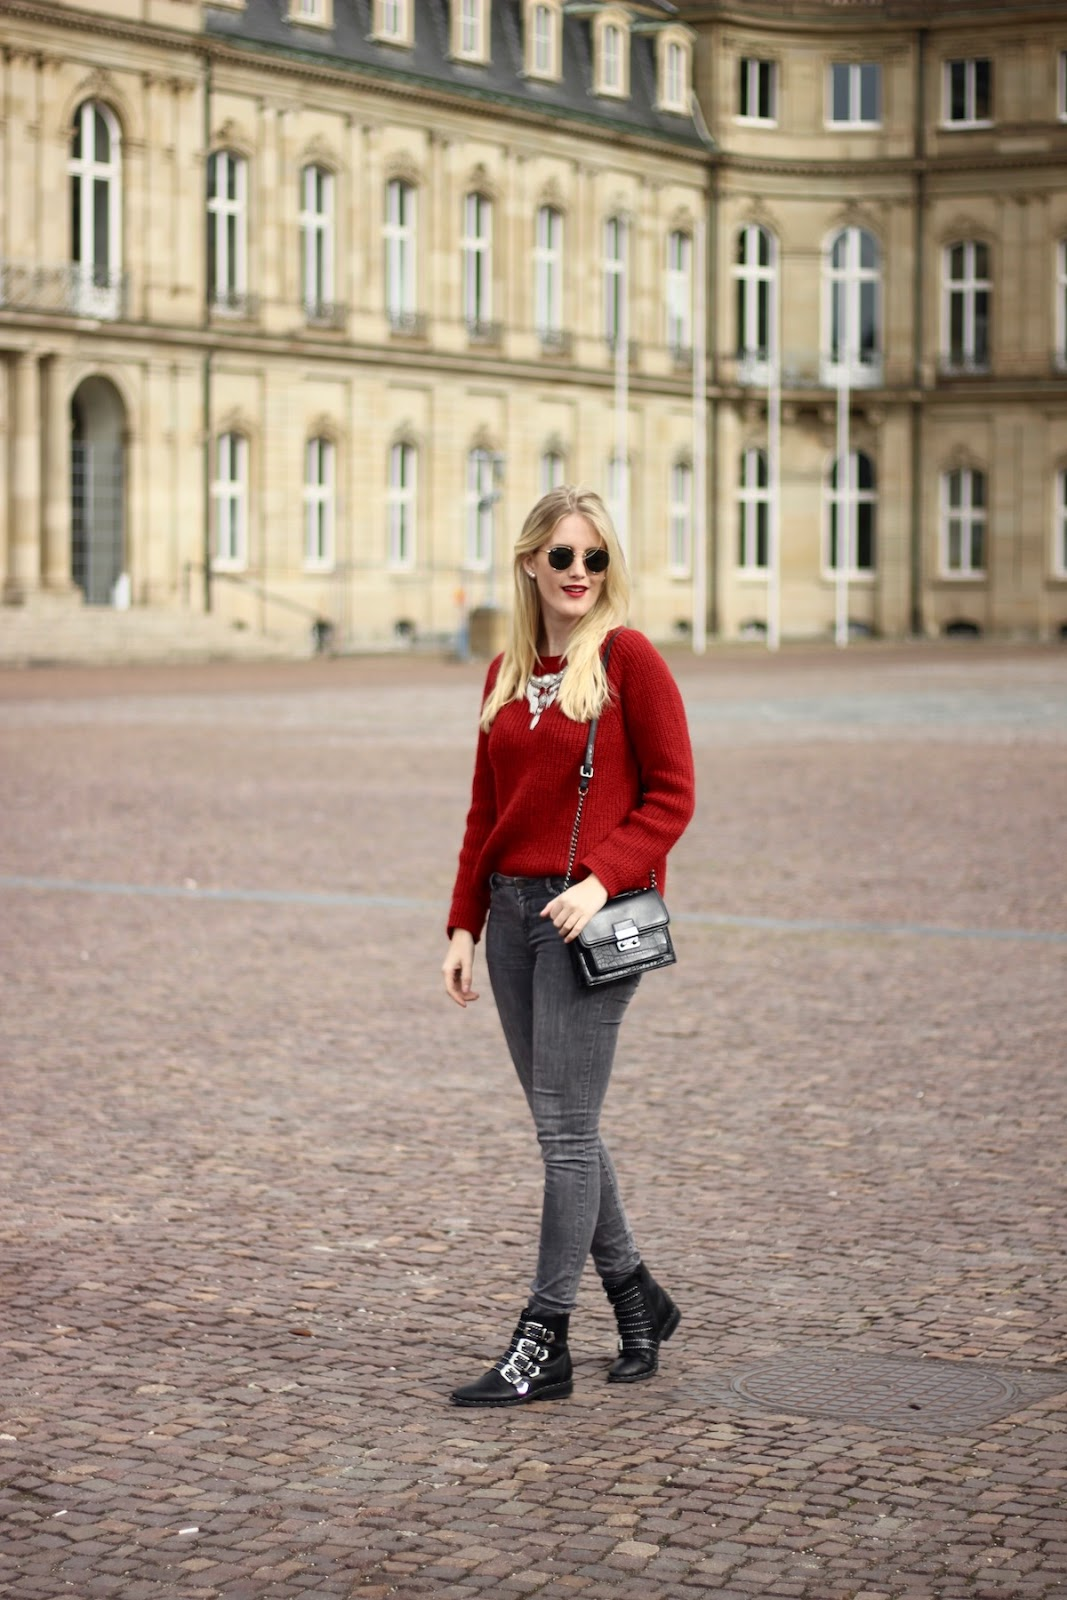 Fashion Outfit: Pullover Herbsttrendfarbe Rot alltagstauglich kombiniert Red Autumn Trend Colour Biker Boots Givenchy Lookalike more on www.theblondelion.com